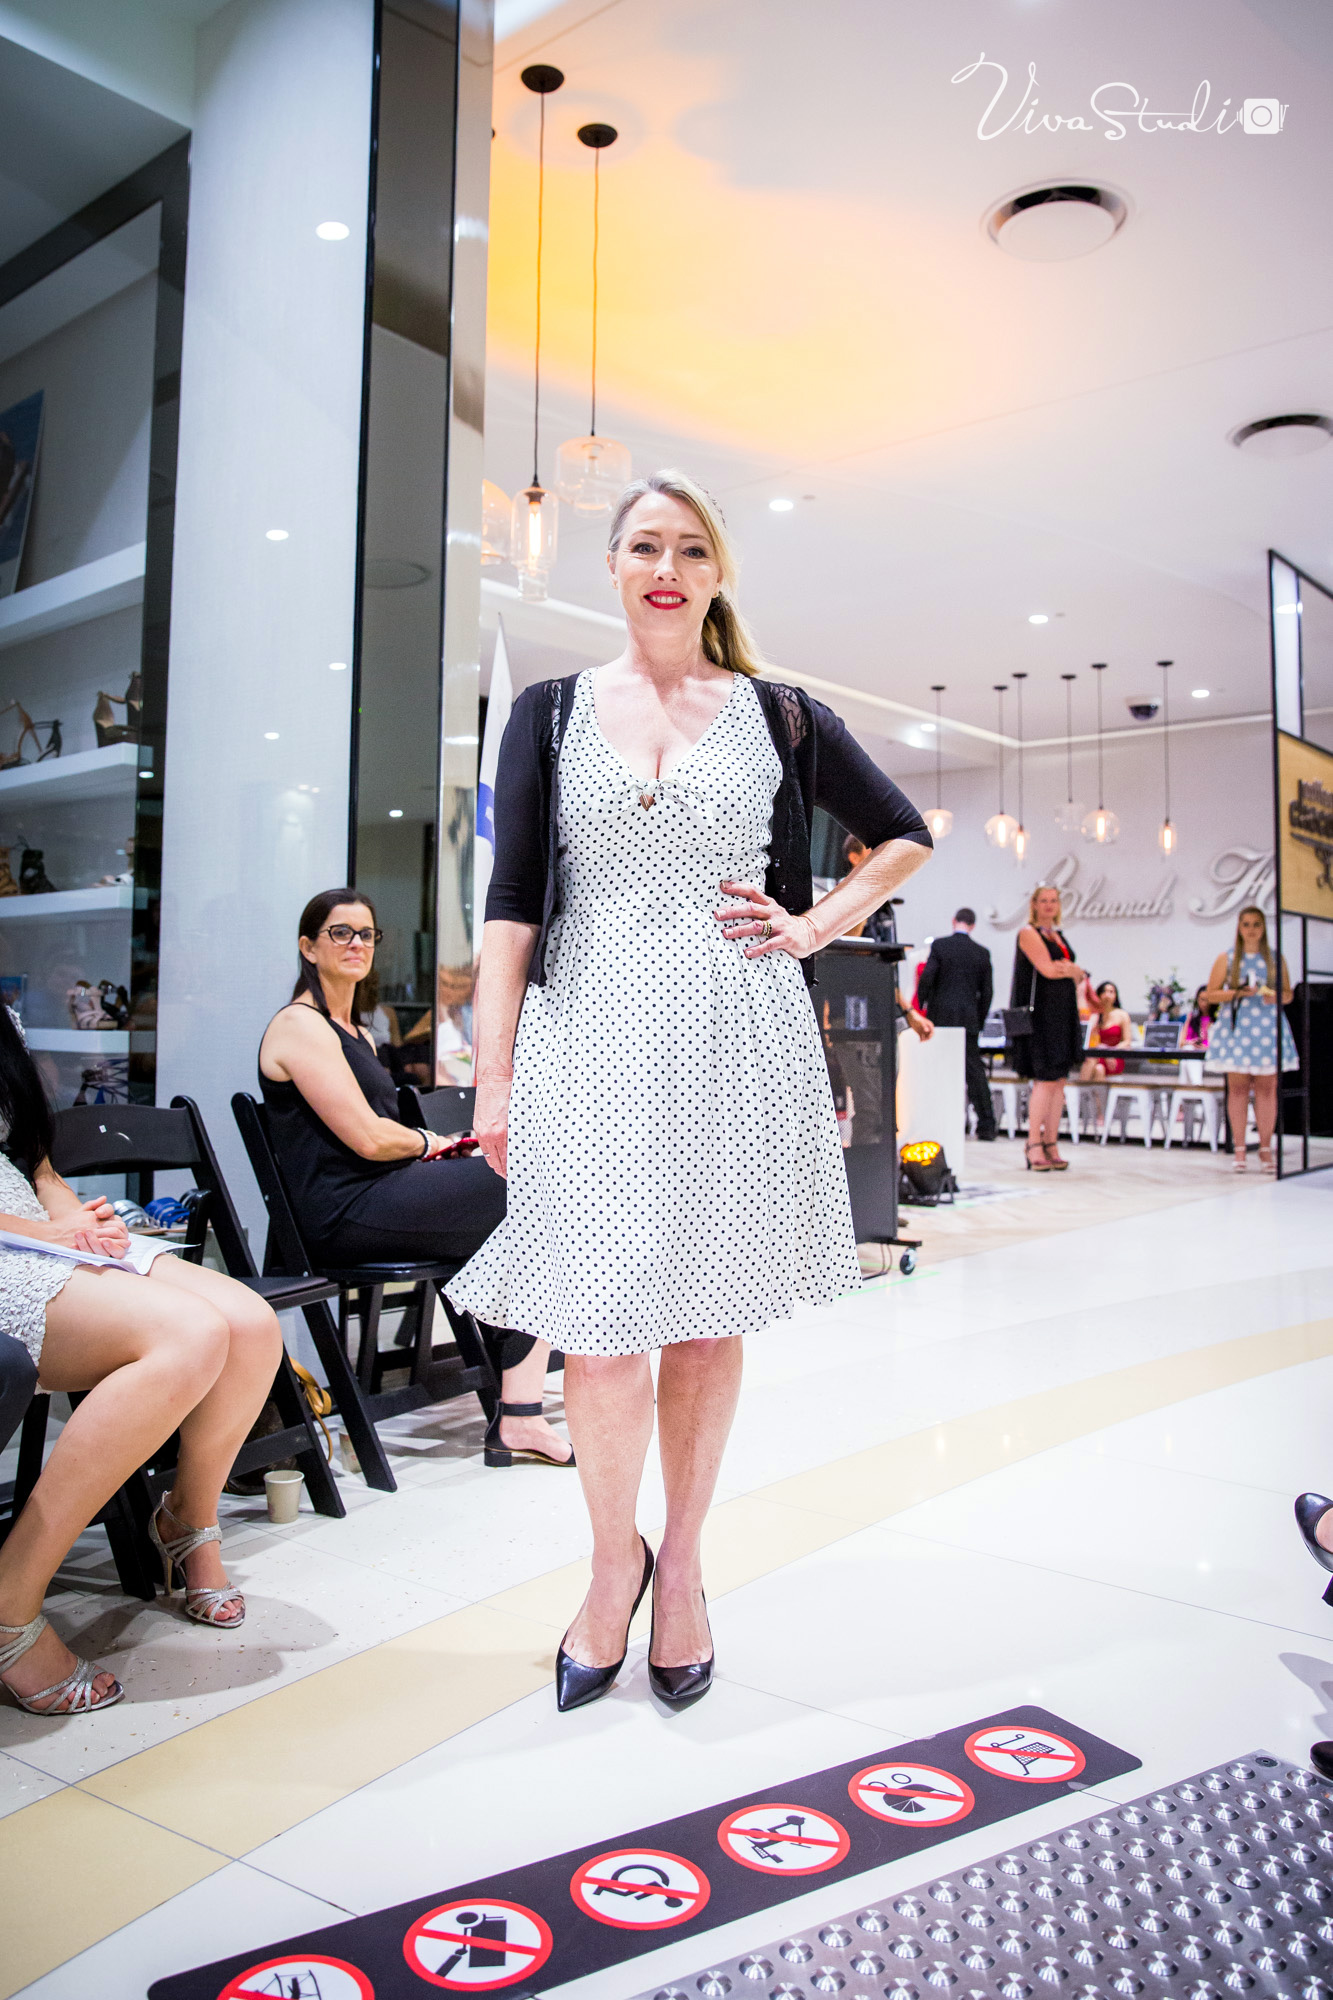 VivaStudio_Design_Photograpphy_Brisbane_Event_Fashionable_20151105_0168